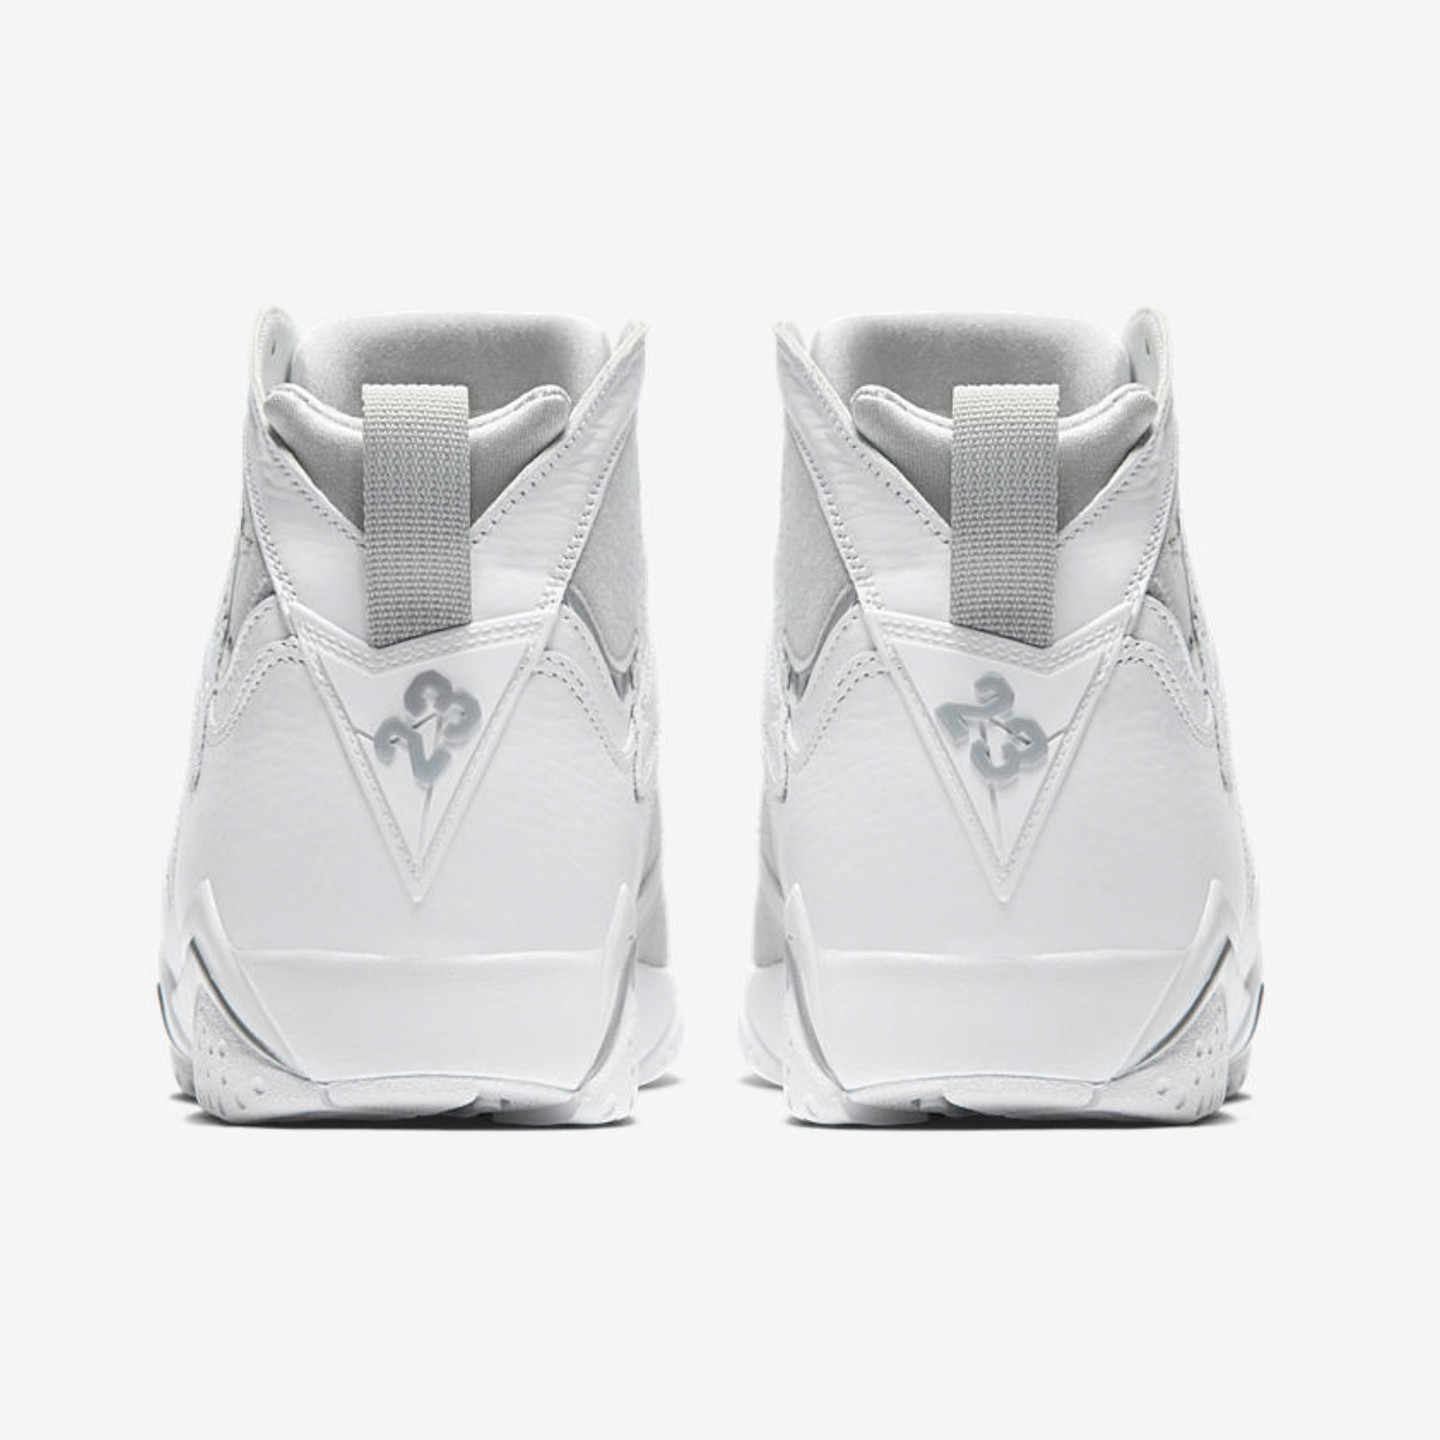 Jordan Air Jordan 7 Retro 'Pure Money' White / Metallic Silver 304775-120-45